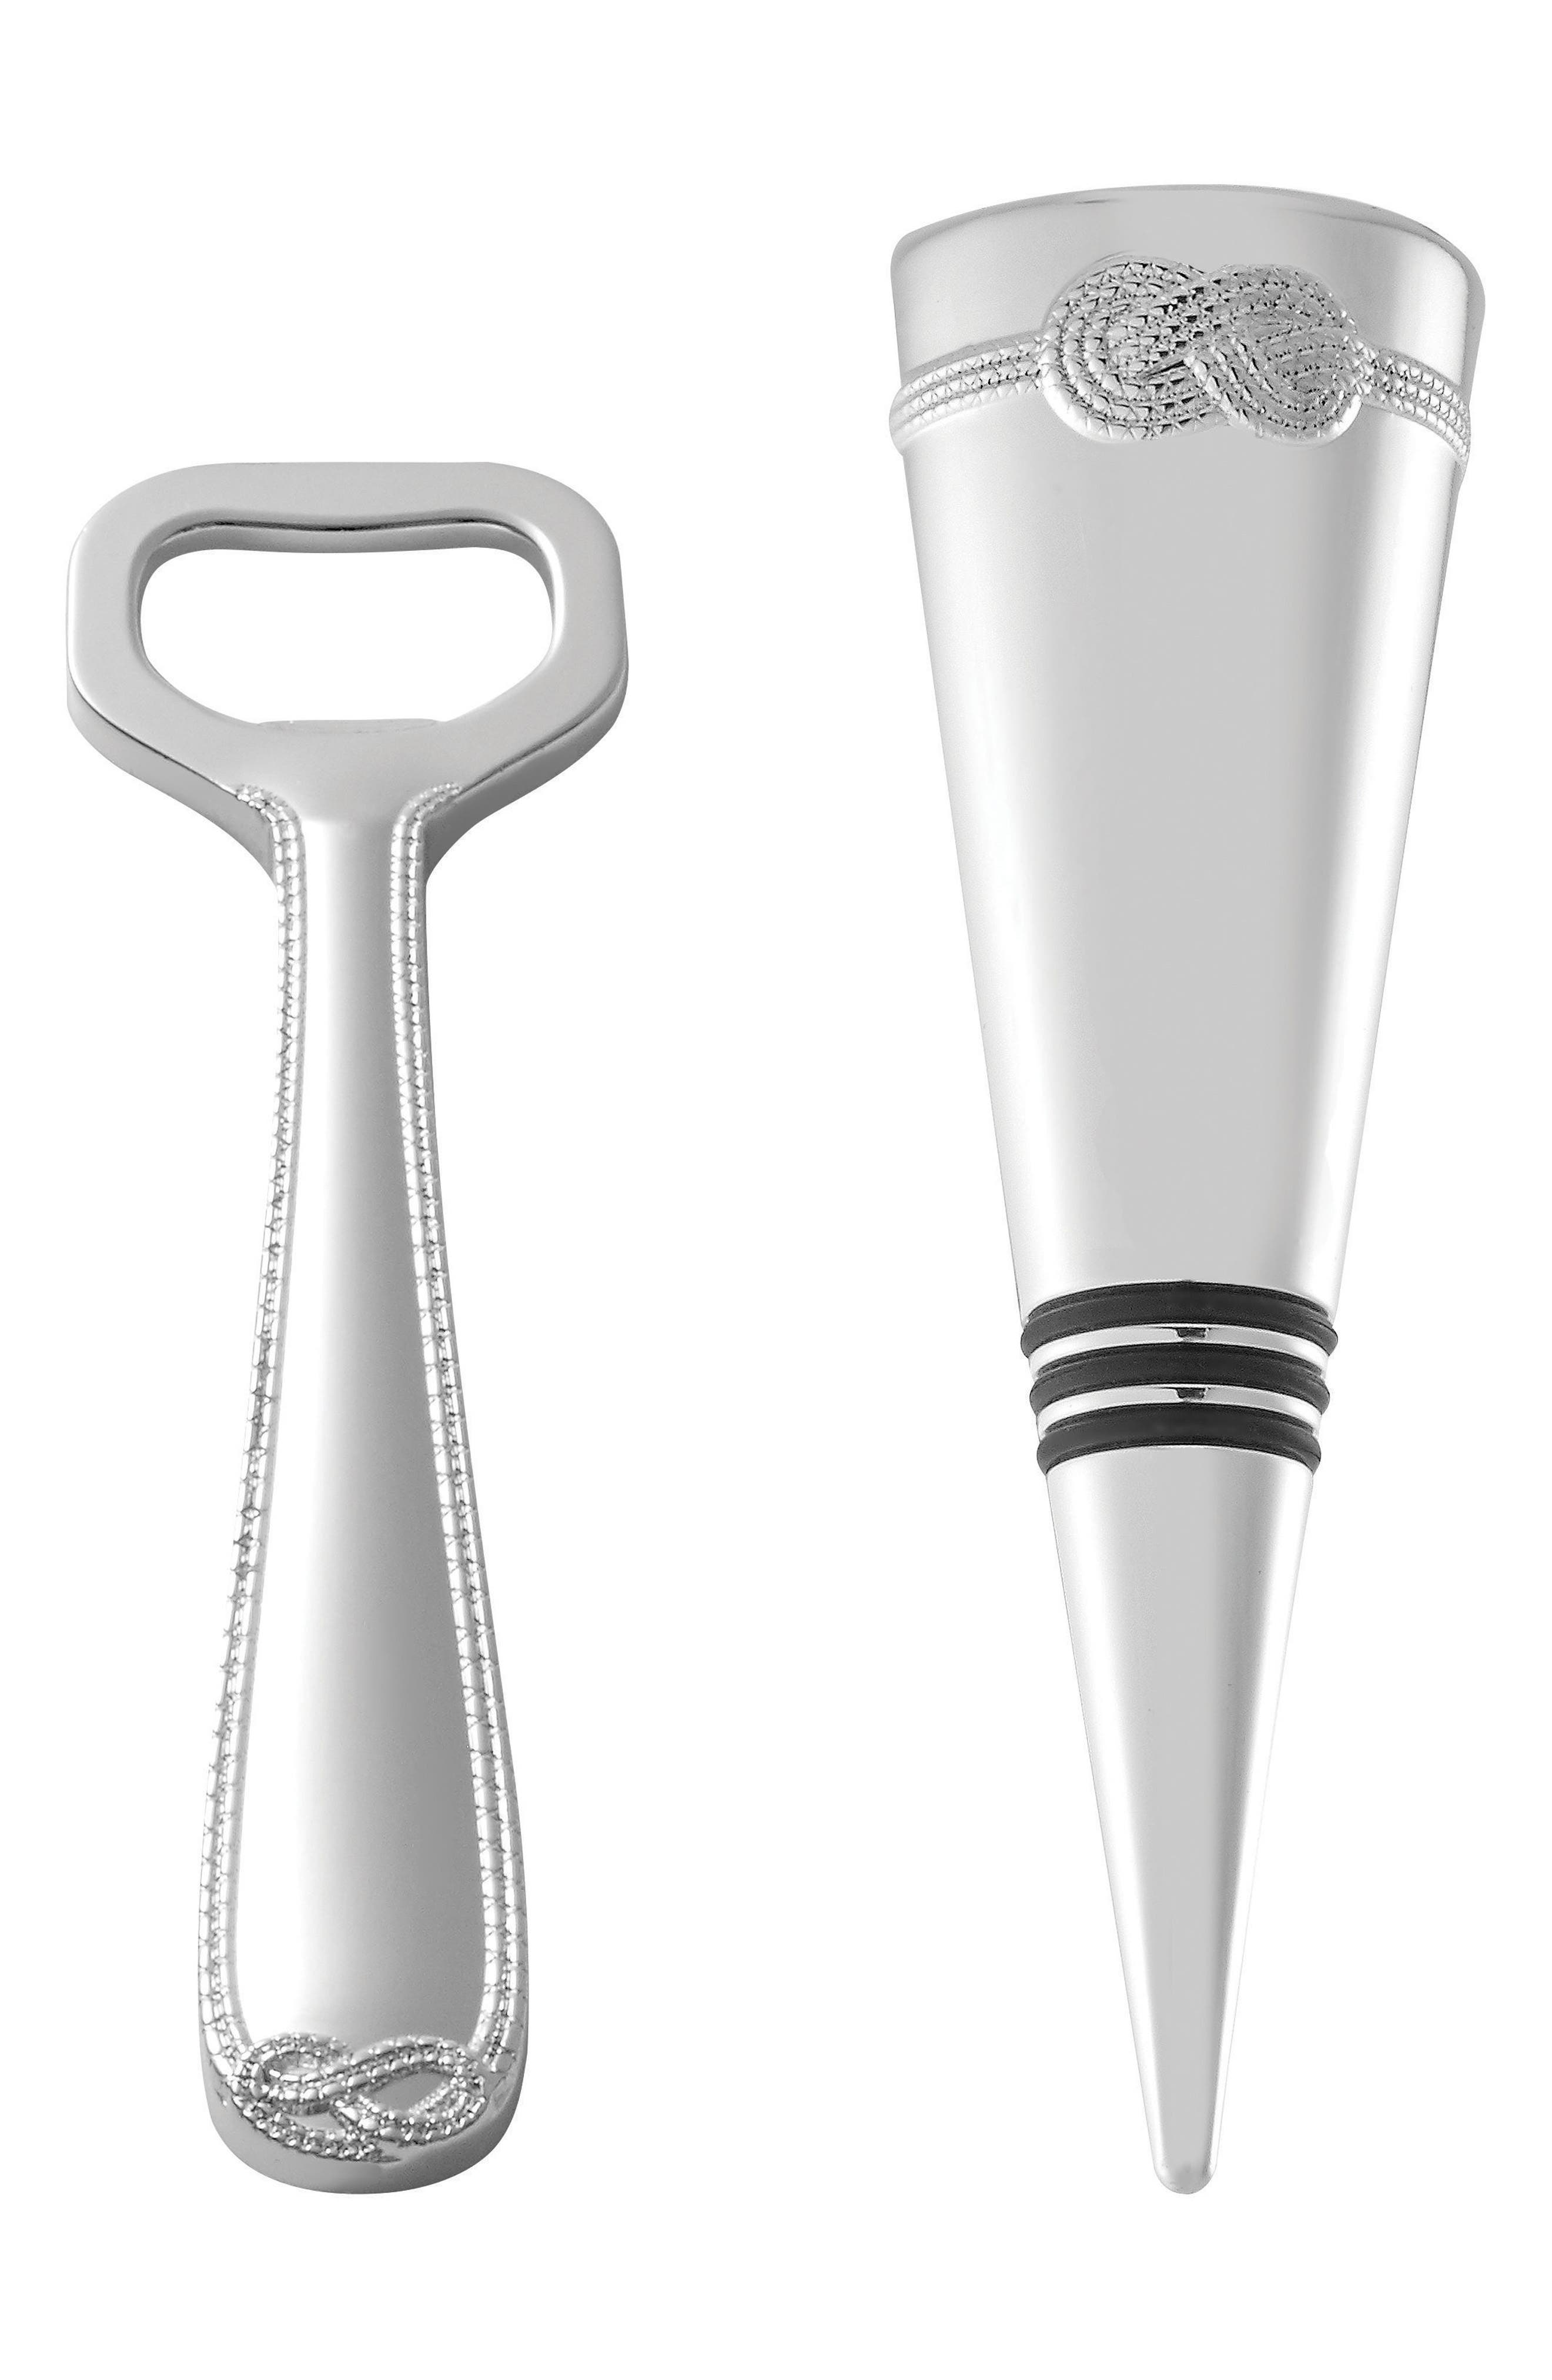 Vera Wang x Wedgewood Infinity Silver Plated Bottle Opener & Stopper